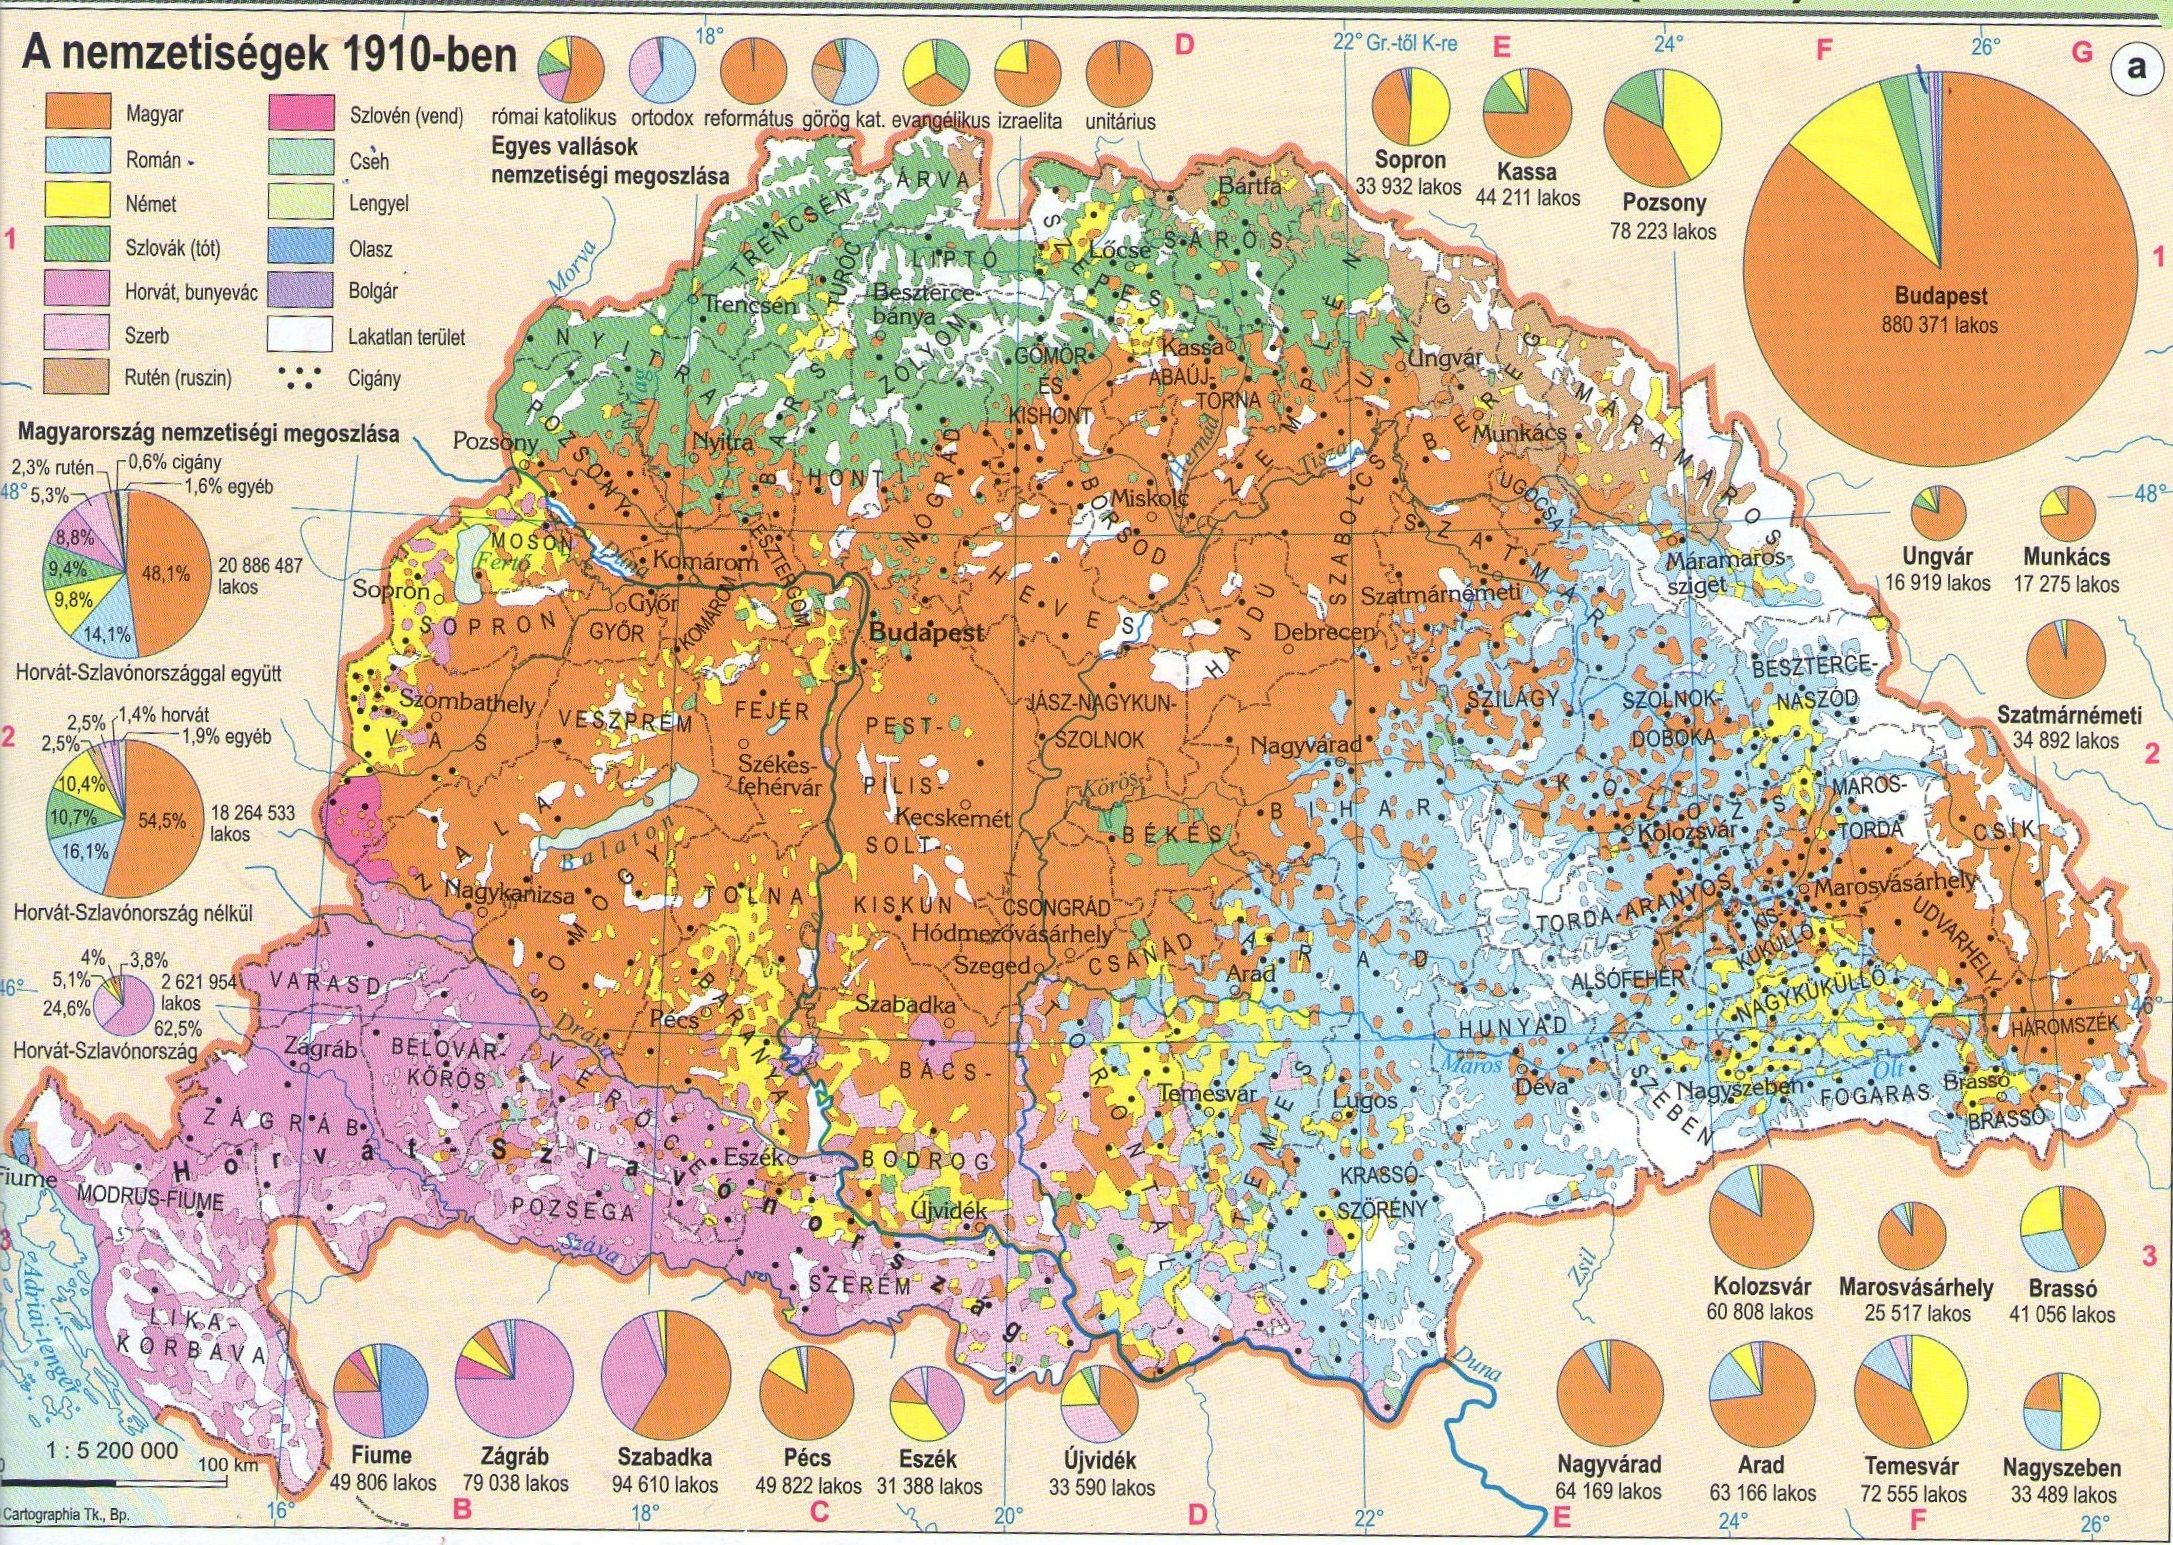 Ethnic composition of the Kingdom of Hungary, 1910 [2173x1545 ... on habsburg monarchy, siege of vienna map, kingdom of prussia, sukhothai kingdom map, duchy of burgundy map, holy crown of hungary, great moravia, republic of macedonia map, hungarian people, frankish kingdom map, republic of china map, democratic republic of the congo map, republic of florence map, kingdom of hungary 1910, hungarian language, mushroom kingdom map, union of soviet socialist republics map, mongol invasion of europe, house of habsburg, treaty of trianon, kingdom of hungary flag, stephen i of hungary, battle of varna, confederate states of america map, kingdom of yugoslavia, kingdom of hungary in world war 2, hungary counties map, kingdom of bohemia, kingdom of hungary in 1400, revolution of 1848 map, socialist federal republic of yugoslavia, ayutthaya kingdom map, confederation of the rhine map, john hunyadi,